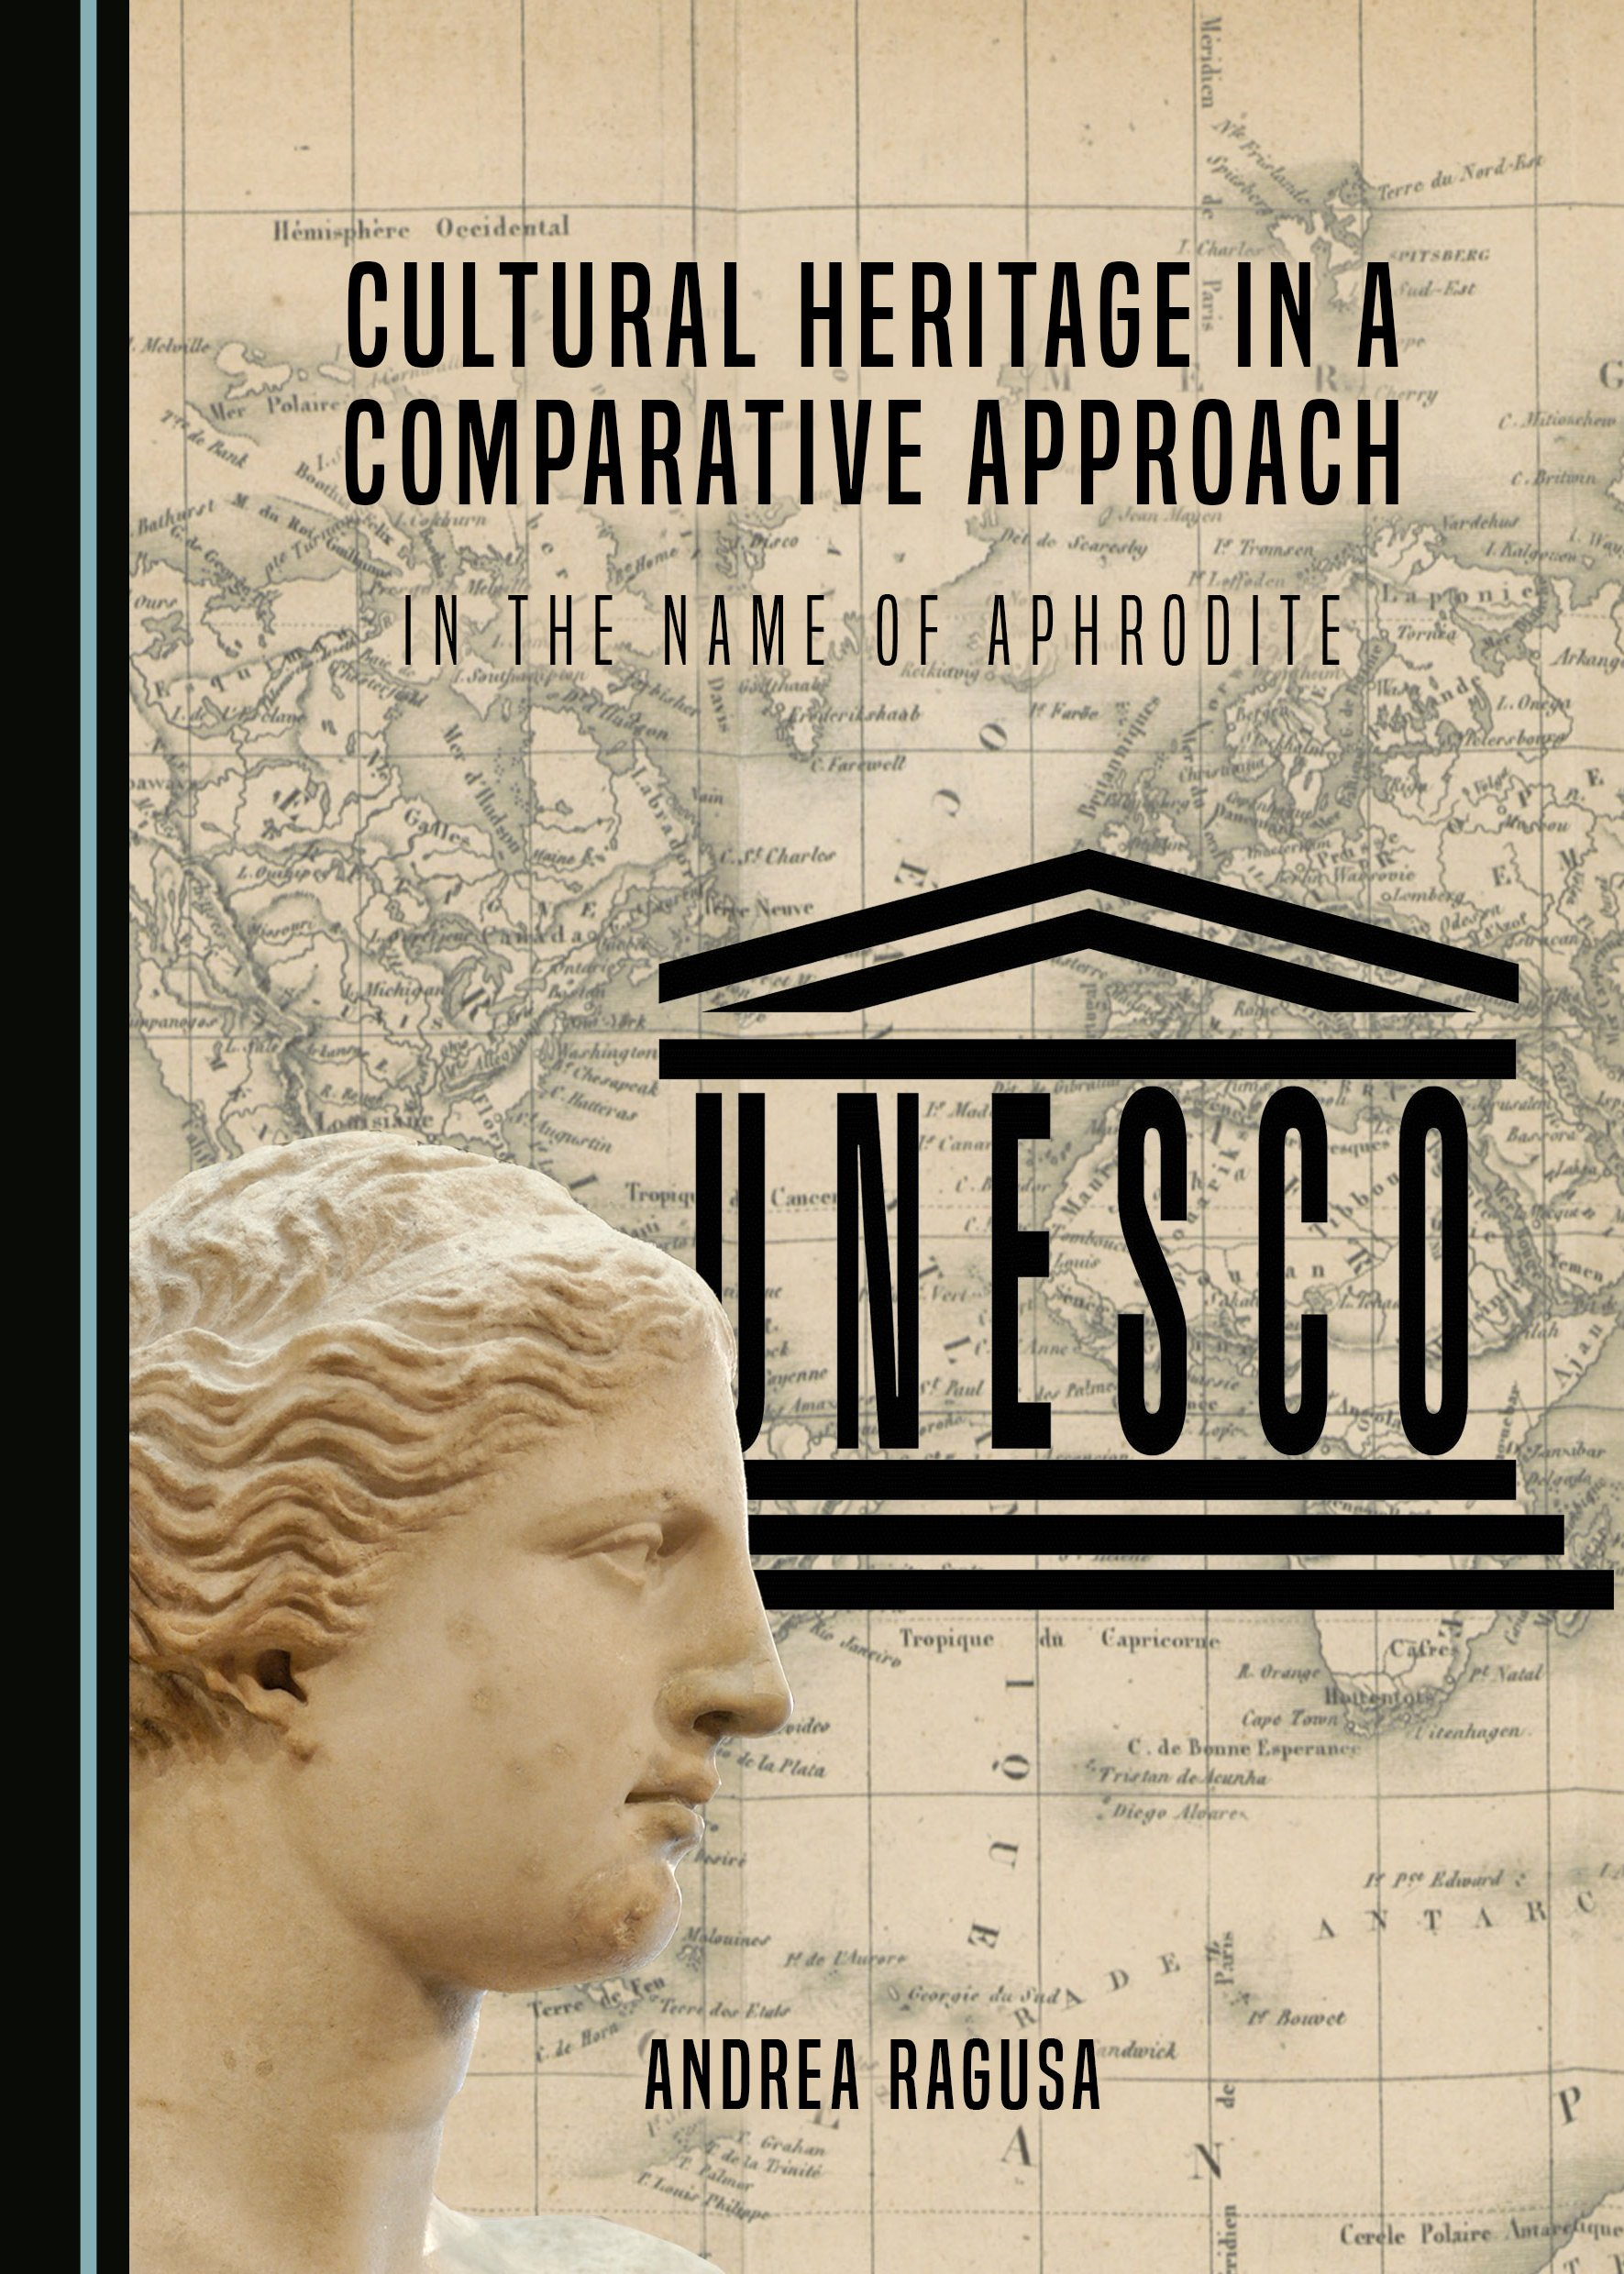 Cultural Heritage in a Comparative Approach: In the Name of Aphrodite